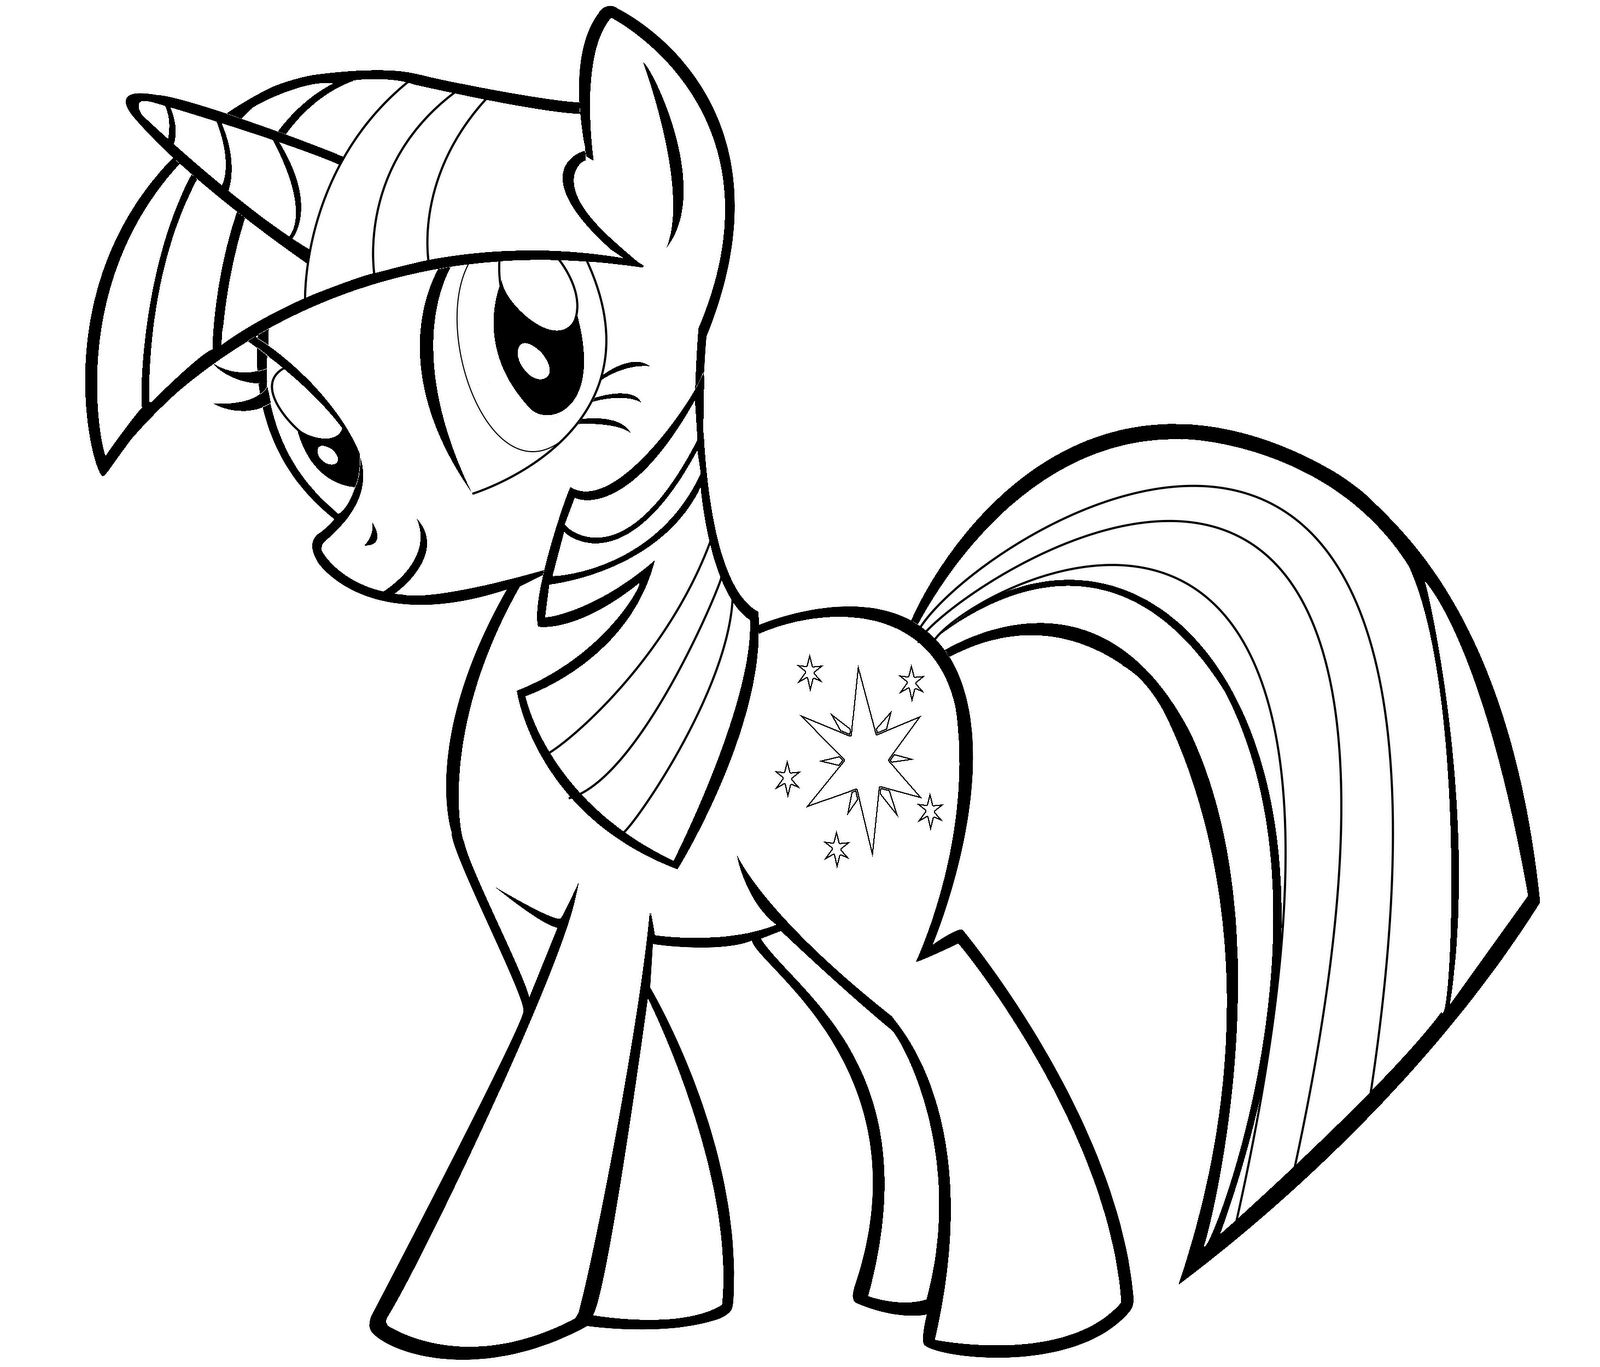 Twilight Sparkle My Little Pony Coloring Page My Little Pony Coloring Pages Princess Twilight Spa My Little Pony Coloring My Little Pony Twilight Pony Drawing